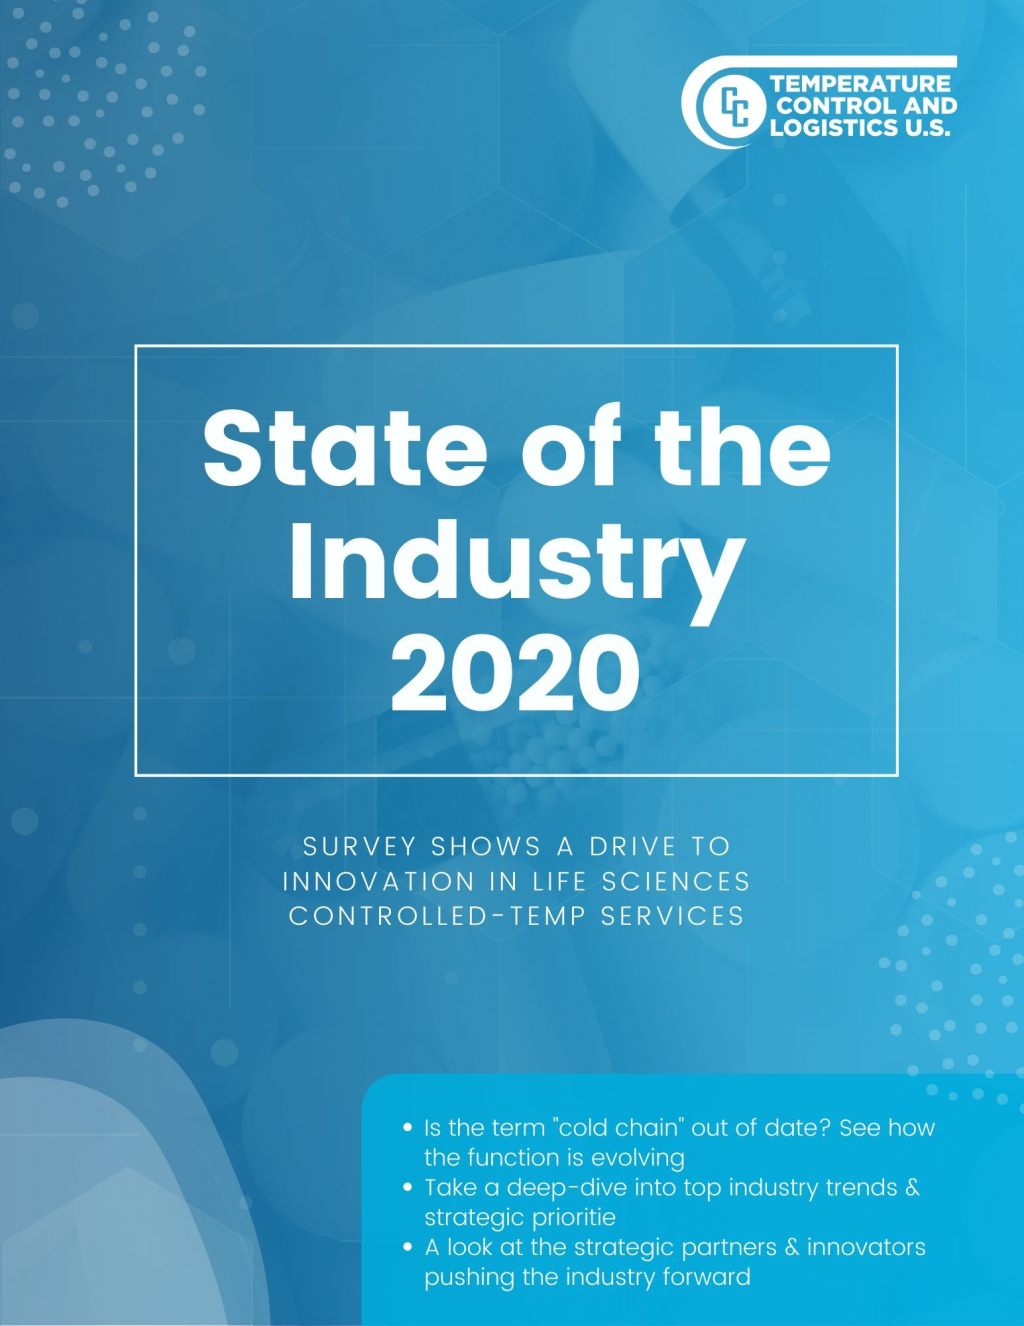 2020 Industry Report: Survey Shows a Drive to Innovation in Life Sciences Controlled-Temp Services